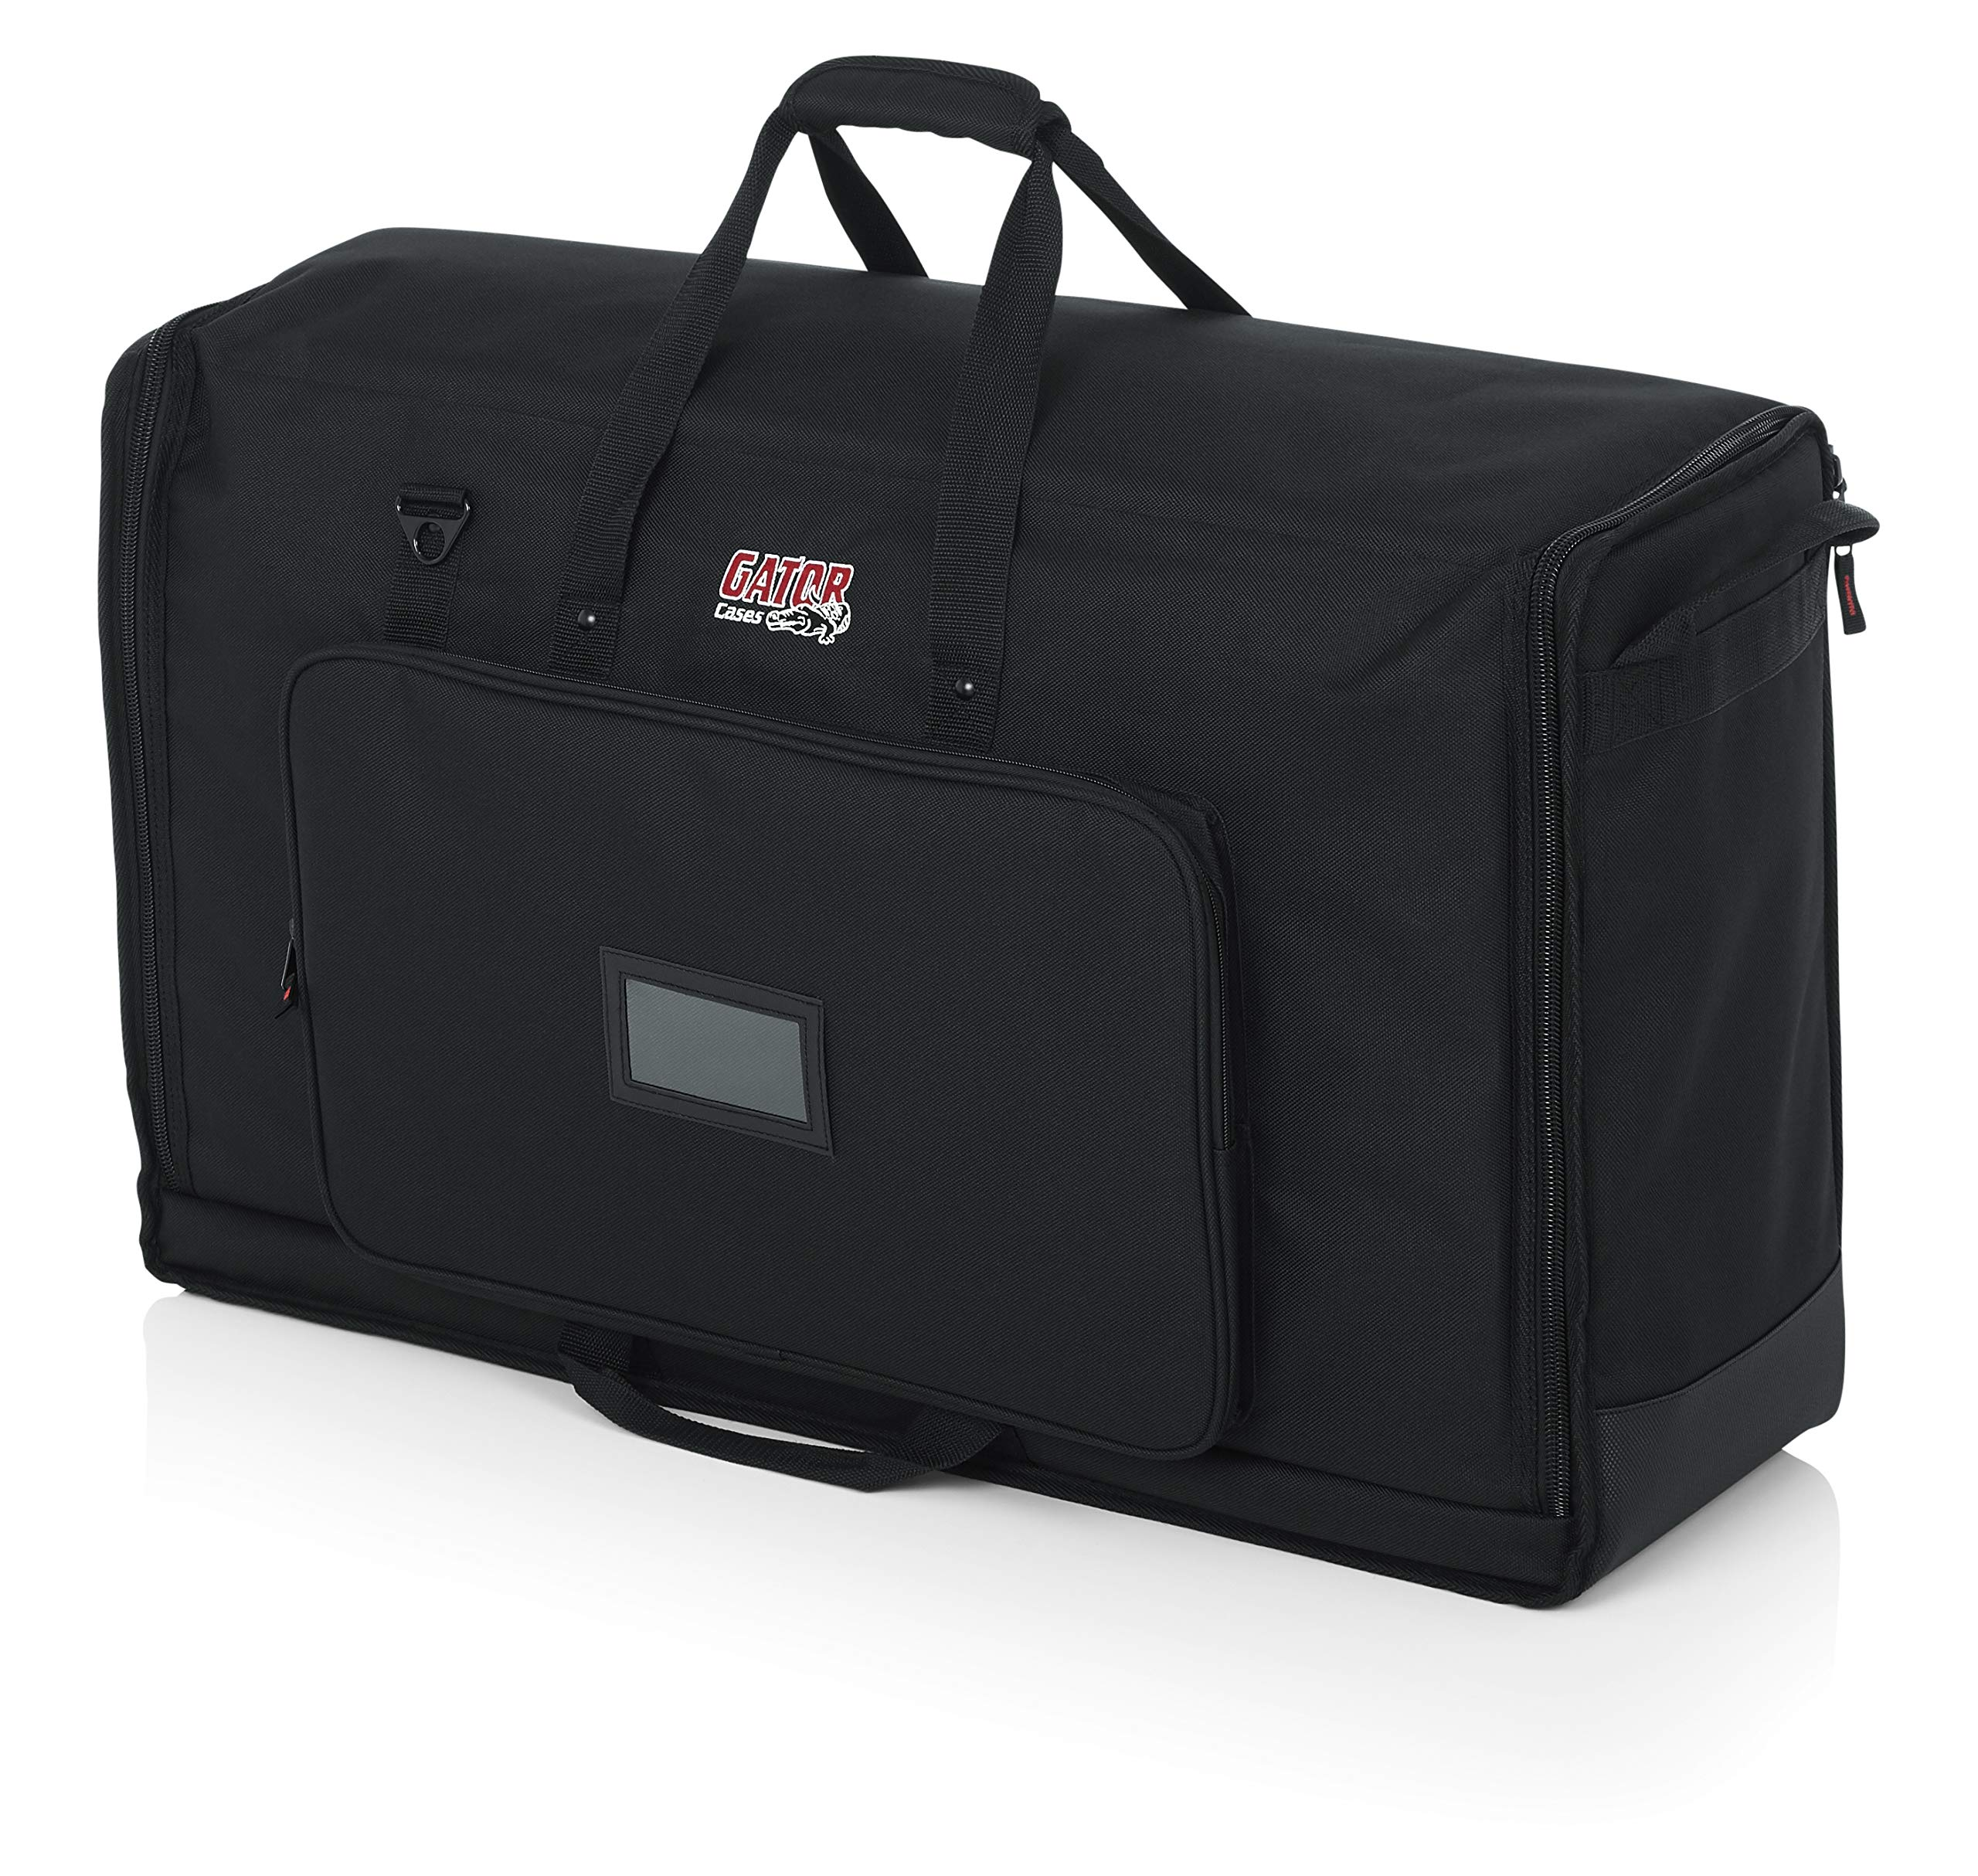 Gator Cases Padded Nylon Dual Carry Tote Bag for Transporting (2) LCD Screens, Monitors and TVs Between 27'' - 32''; (G-LCD-TOTE-MDX2)